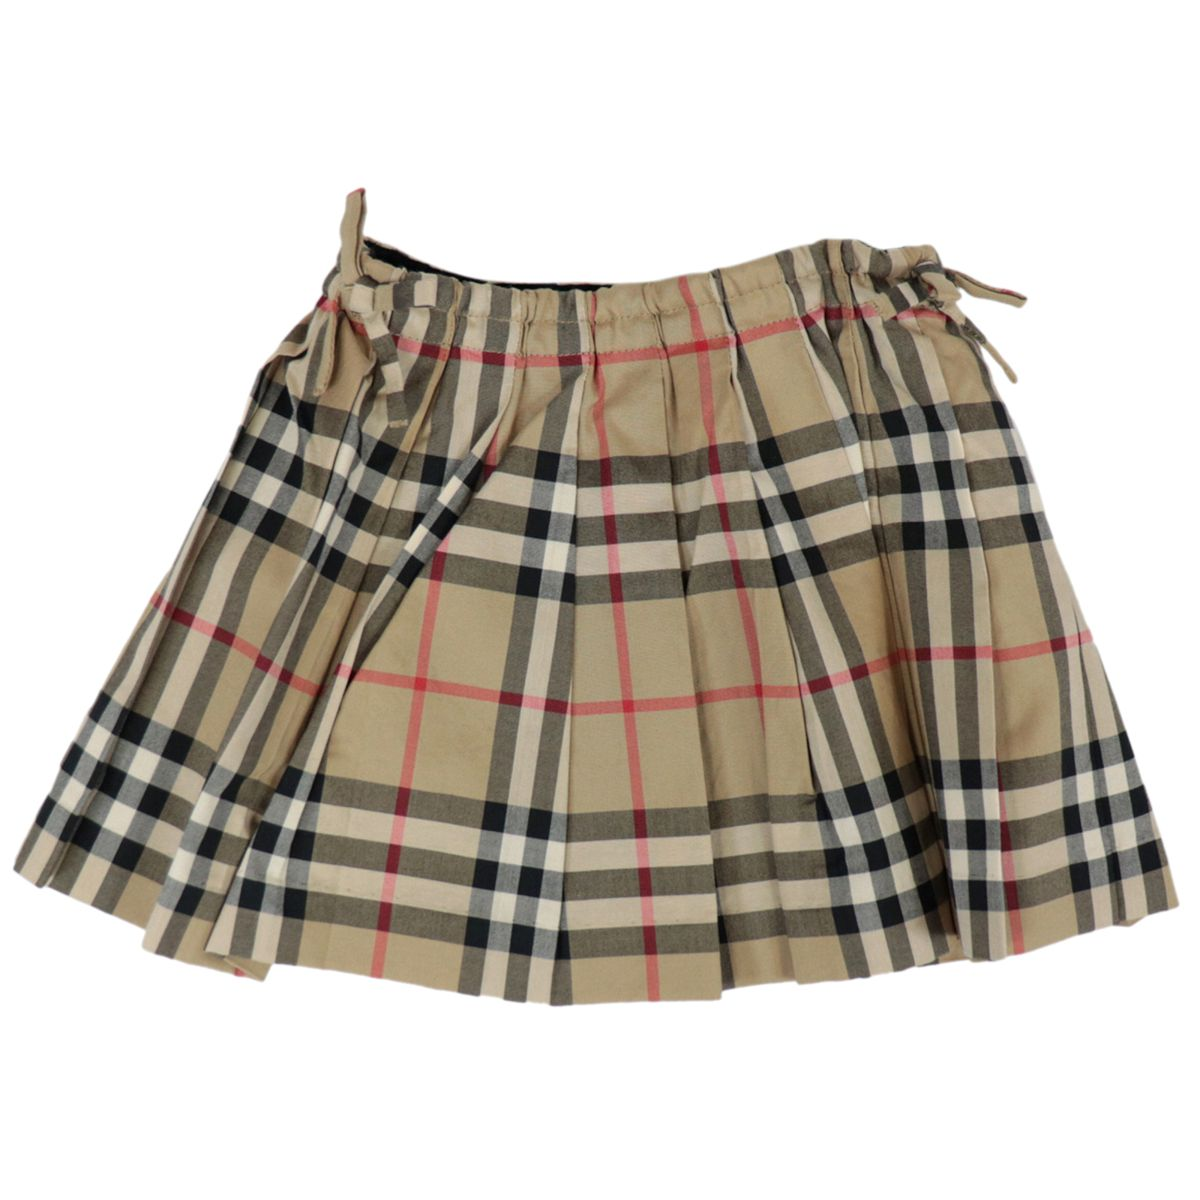 Round skirt in cotton with check print Beige check Burberry